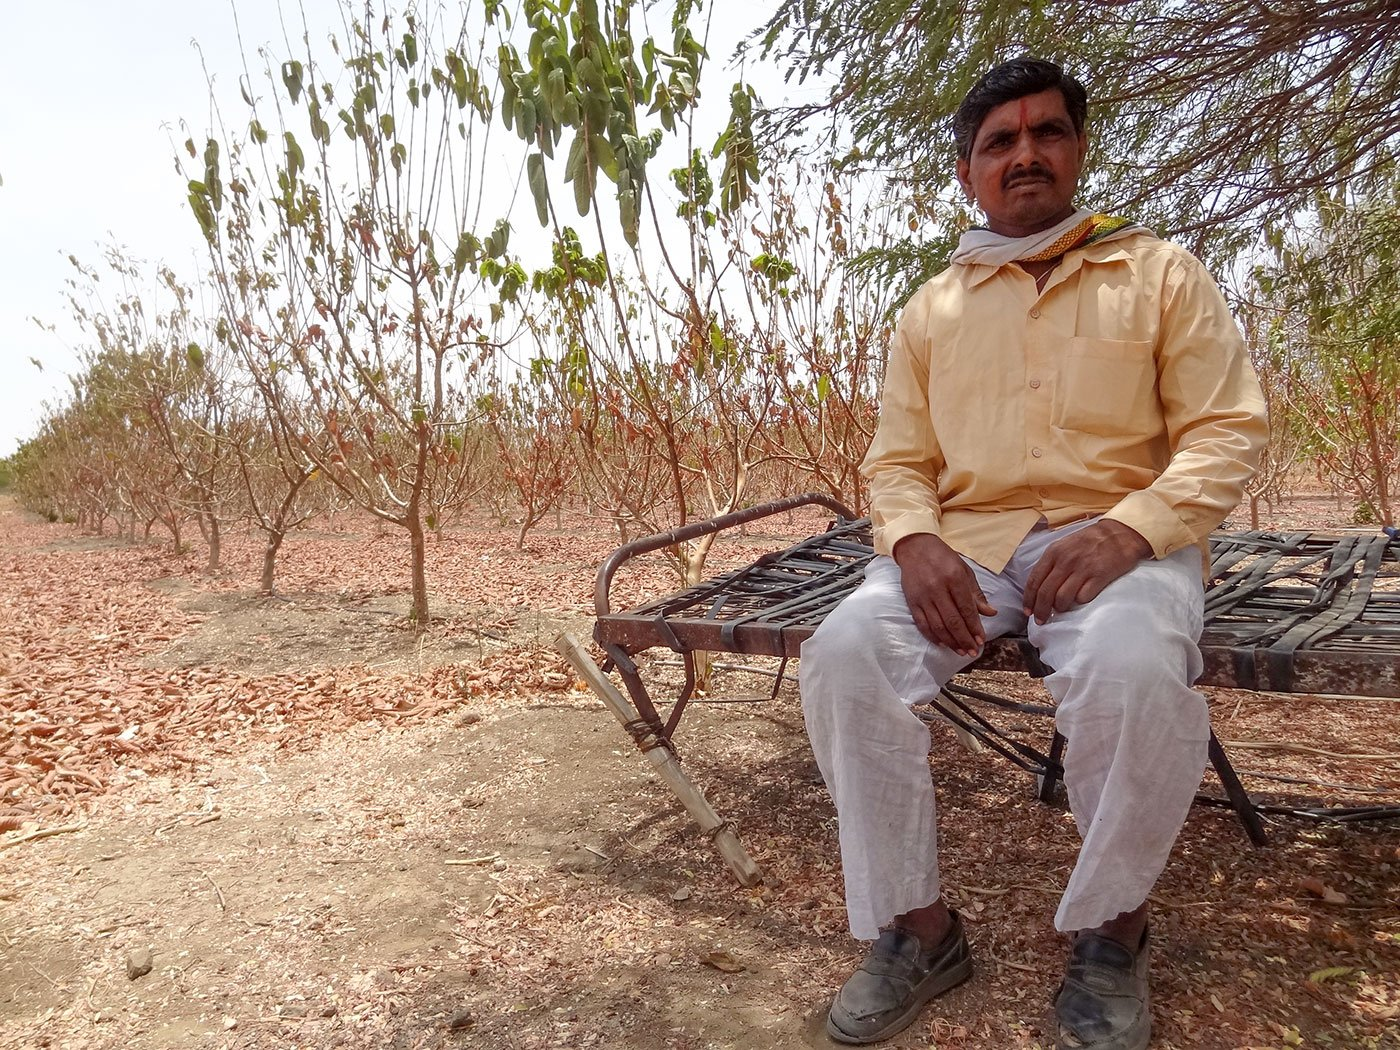 Prahlad Dhoke sits against the backdrop of his dying orchard in the middle of his arid farm; he says he spends hours every day to tend to his farm